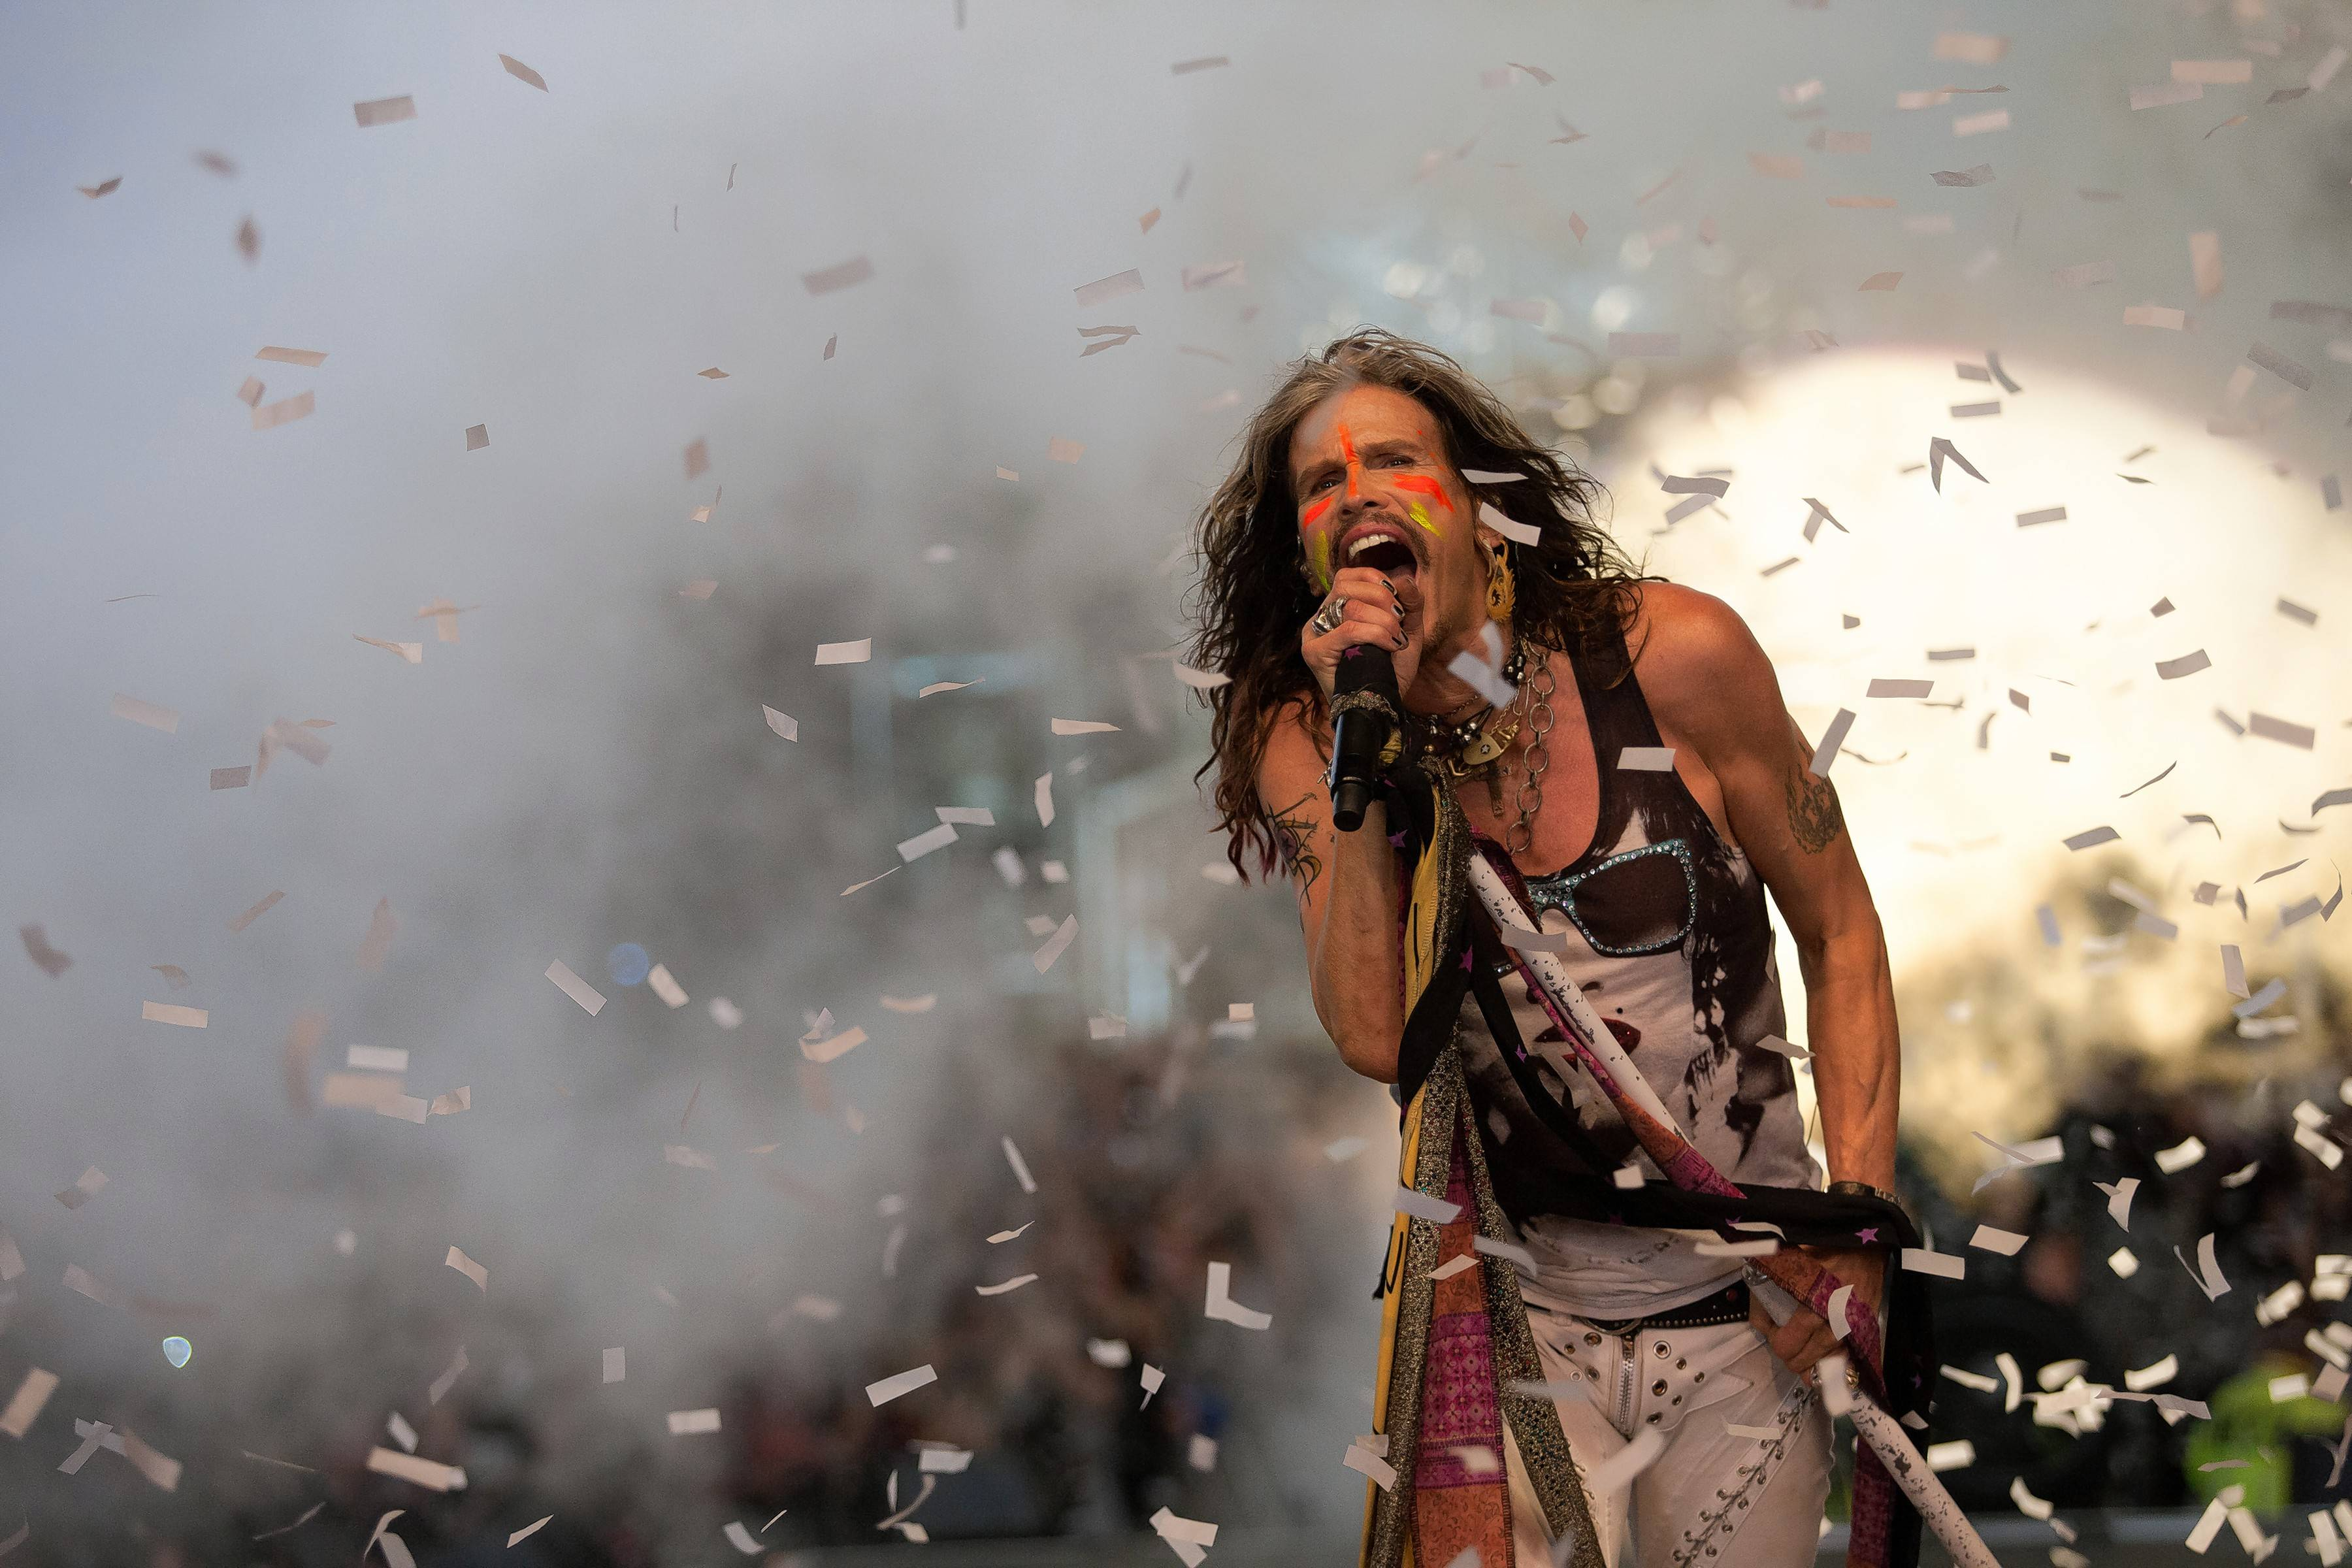 Steven Tyler will perform next July in Naperville during the Exchange Club's annual Ribfest celebration.